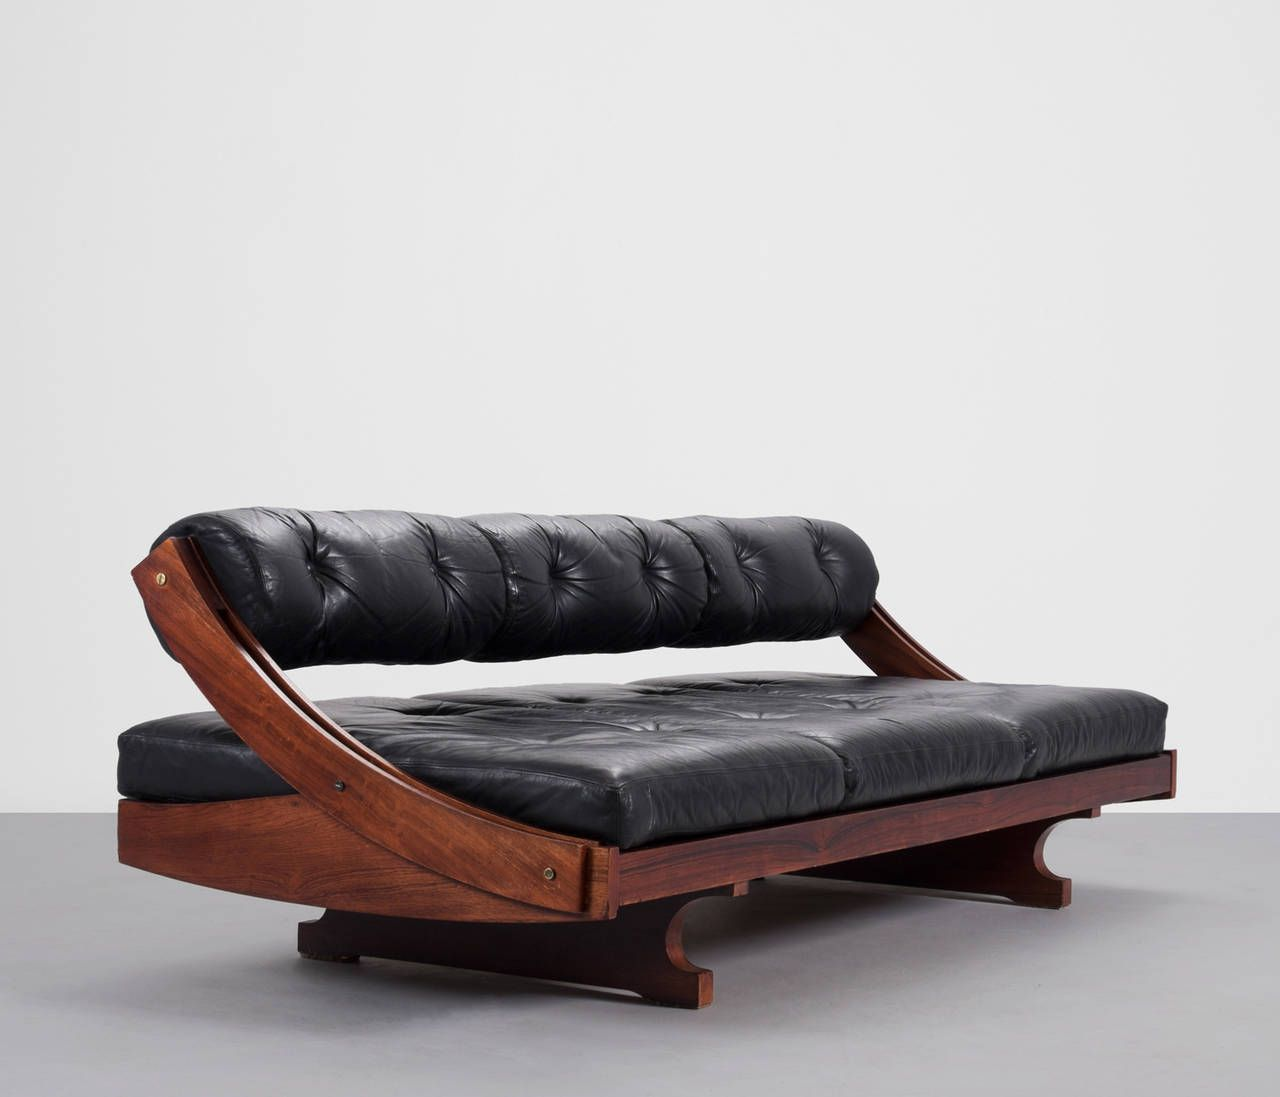 GS-195 Sofa Designed by Gianni Songia for Sormani, Italy, 1963 ...